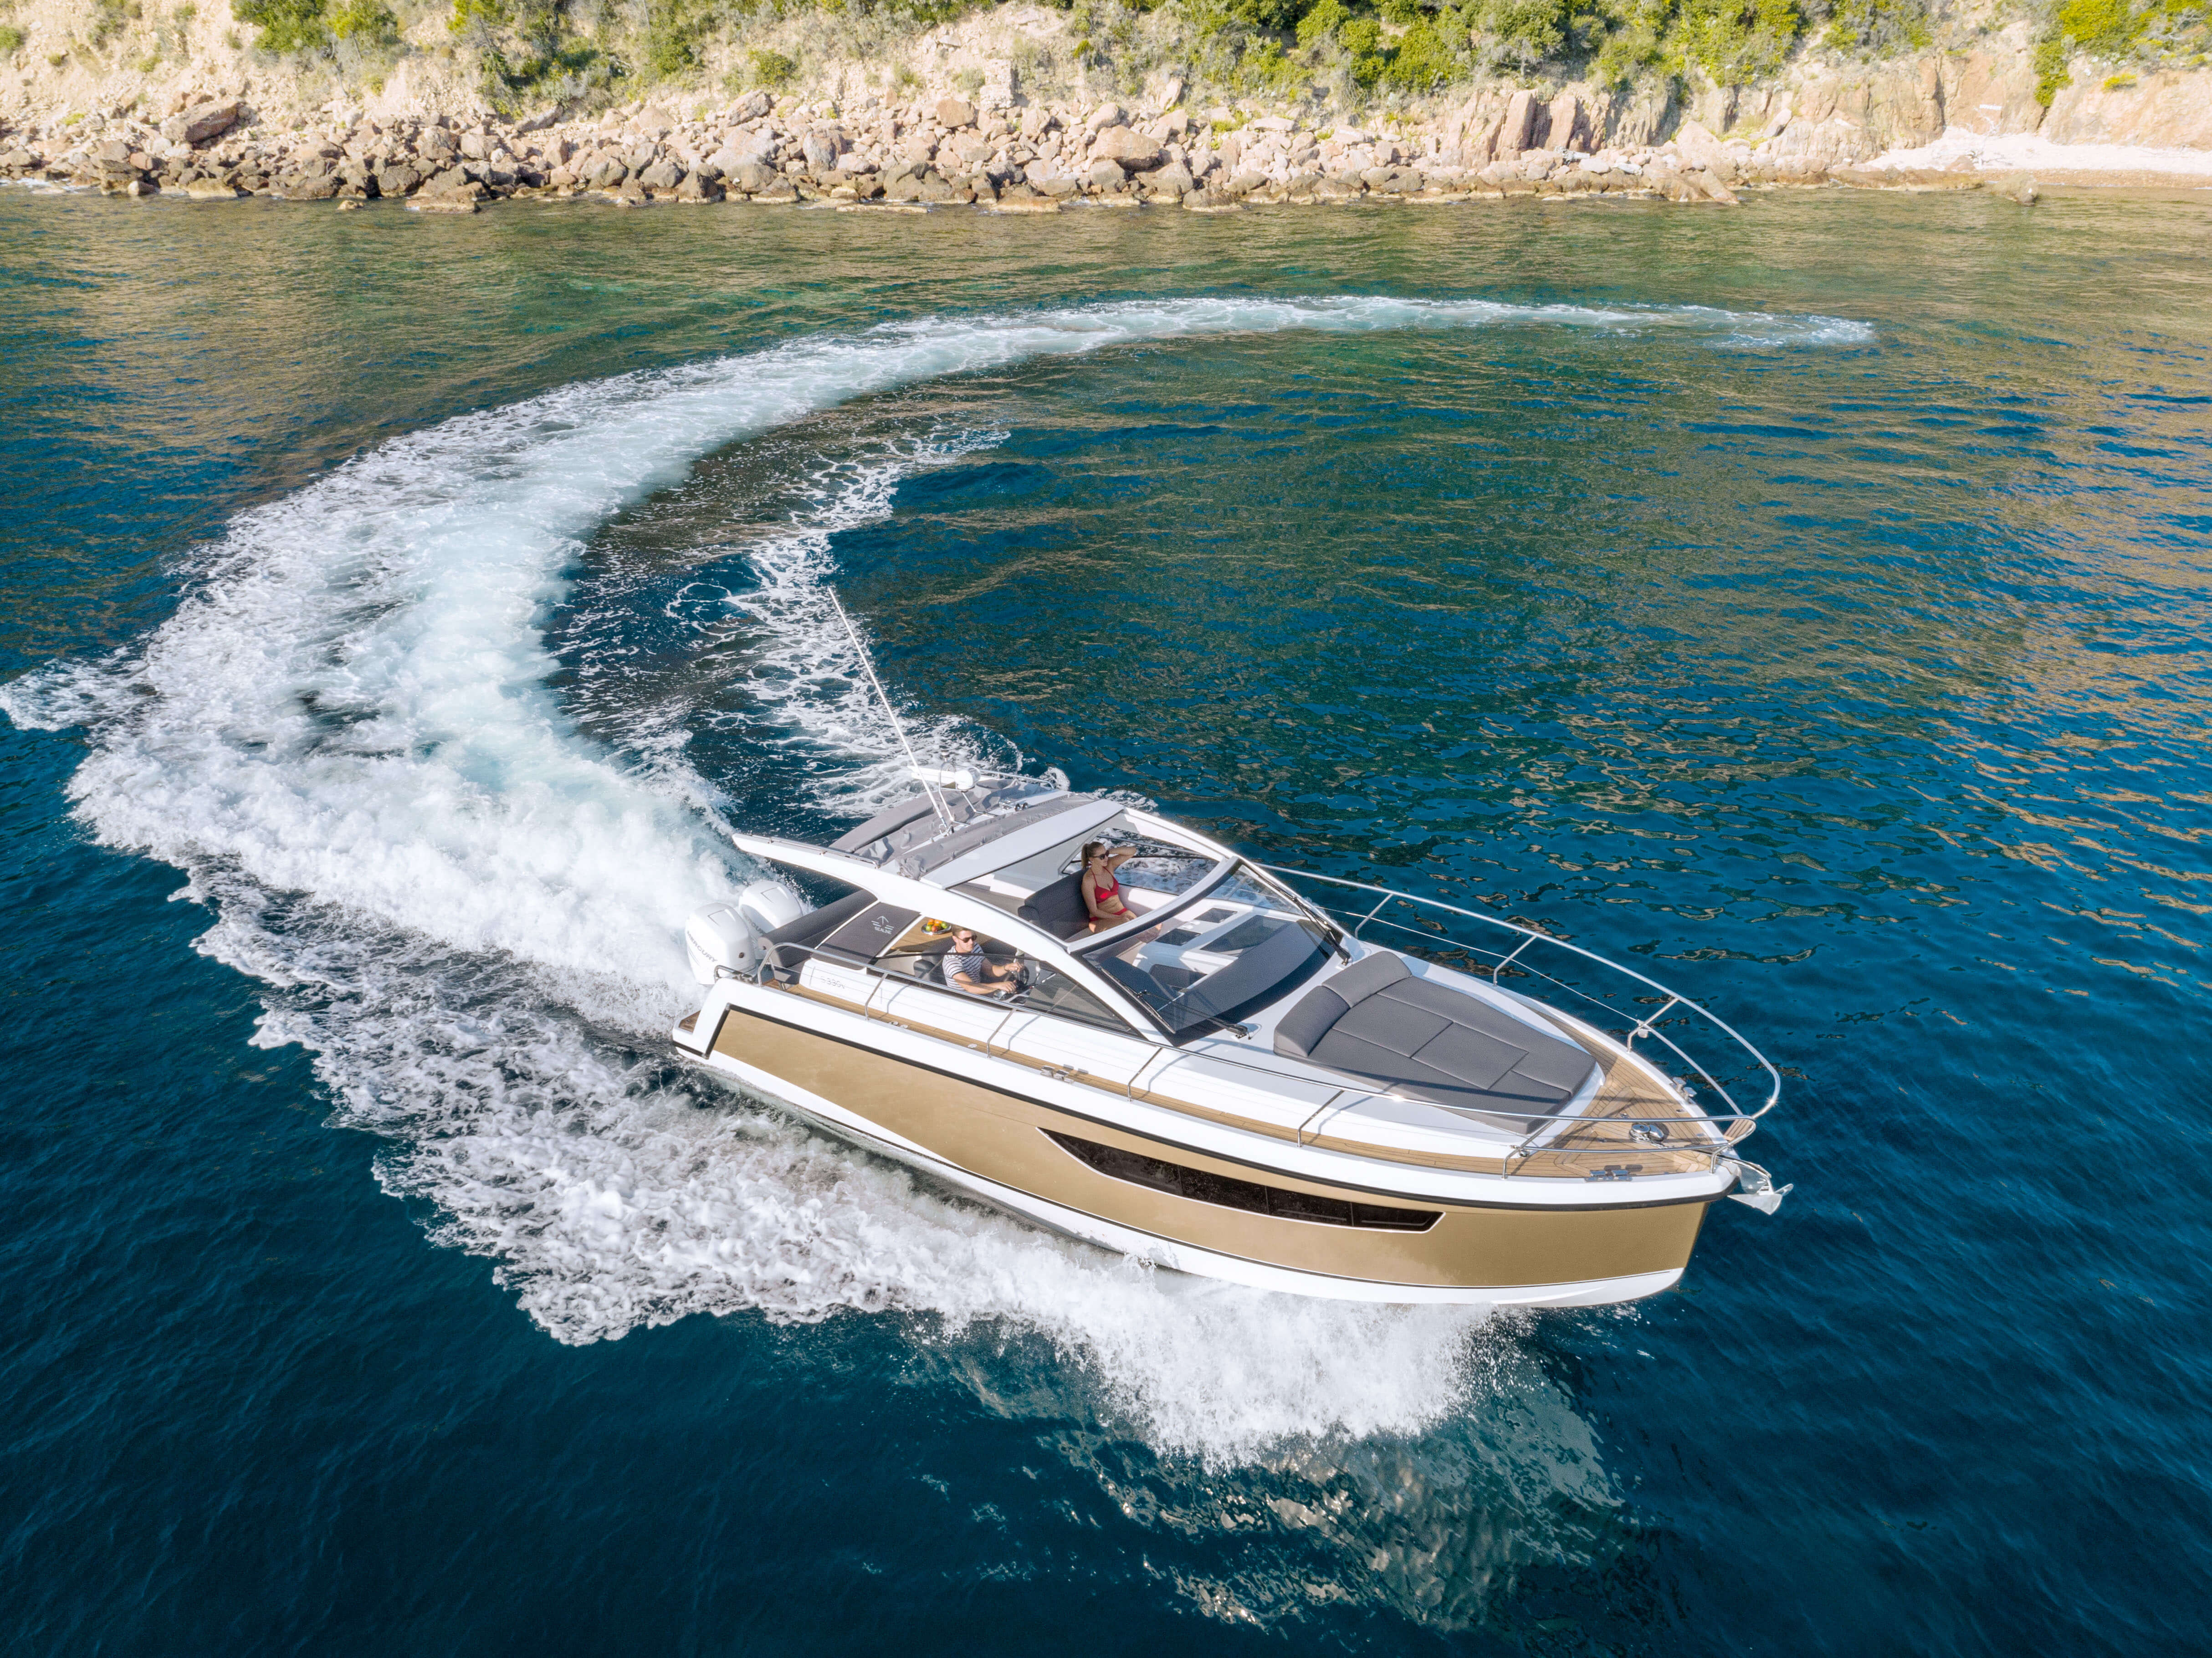 Sealine S330v exterior | The Sealine S330v is here, ready to exceed your expecations. | Sealine